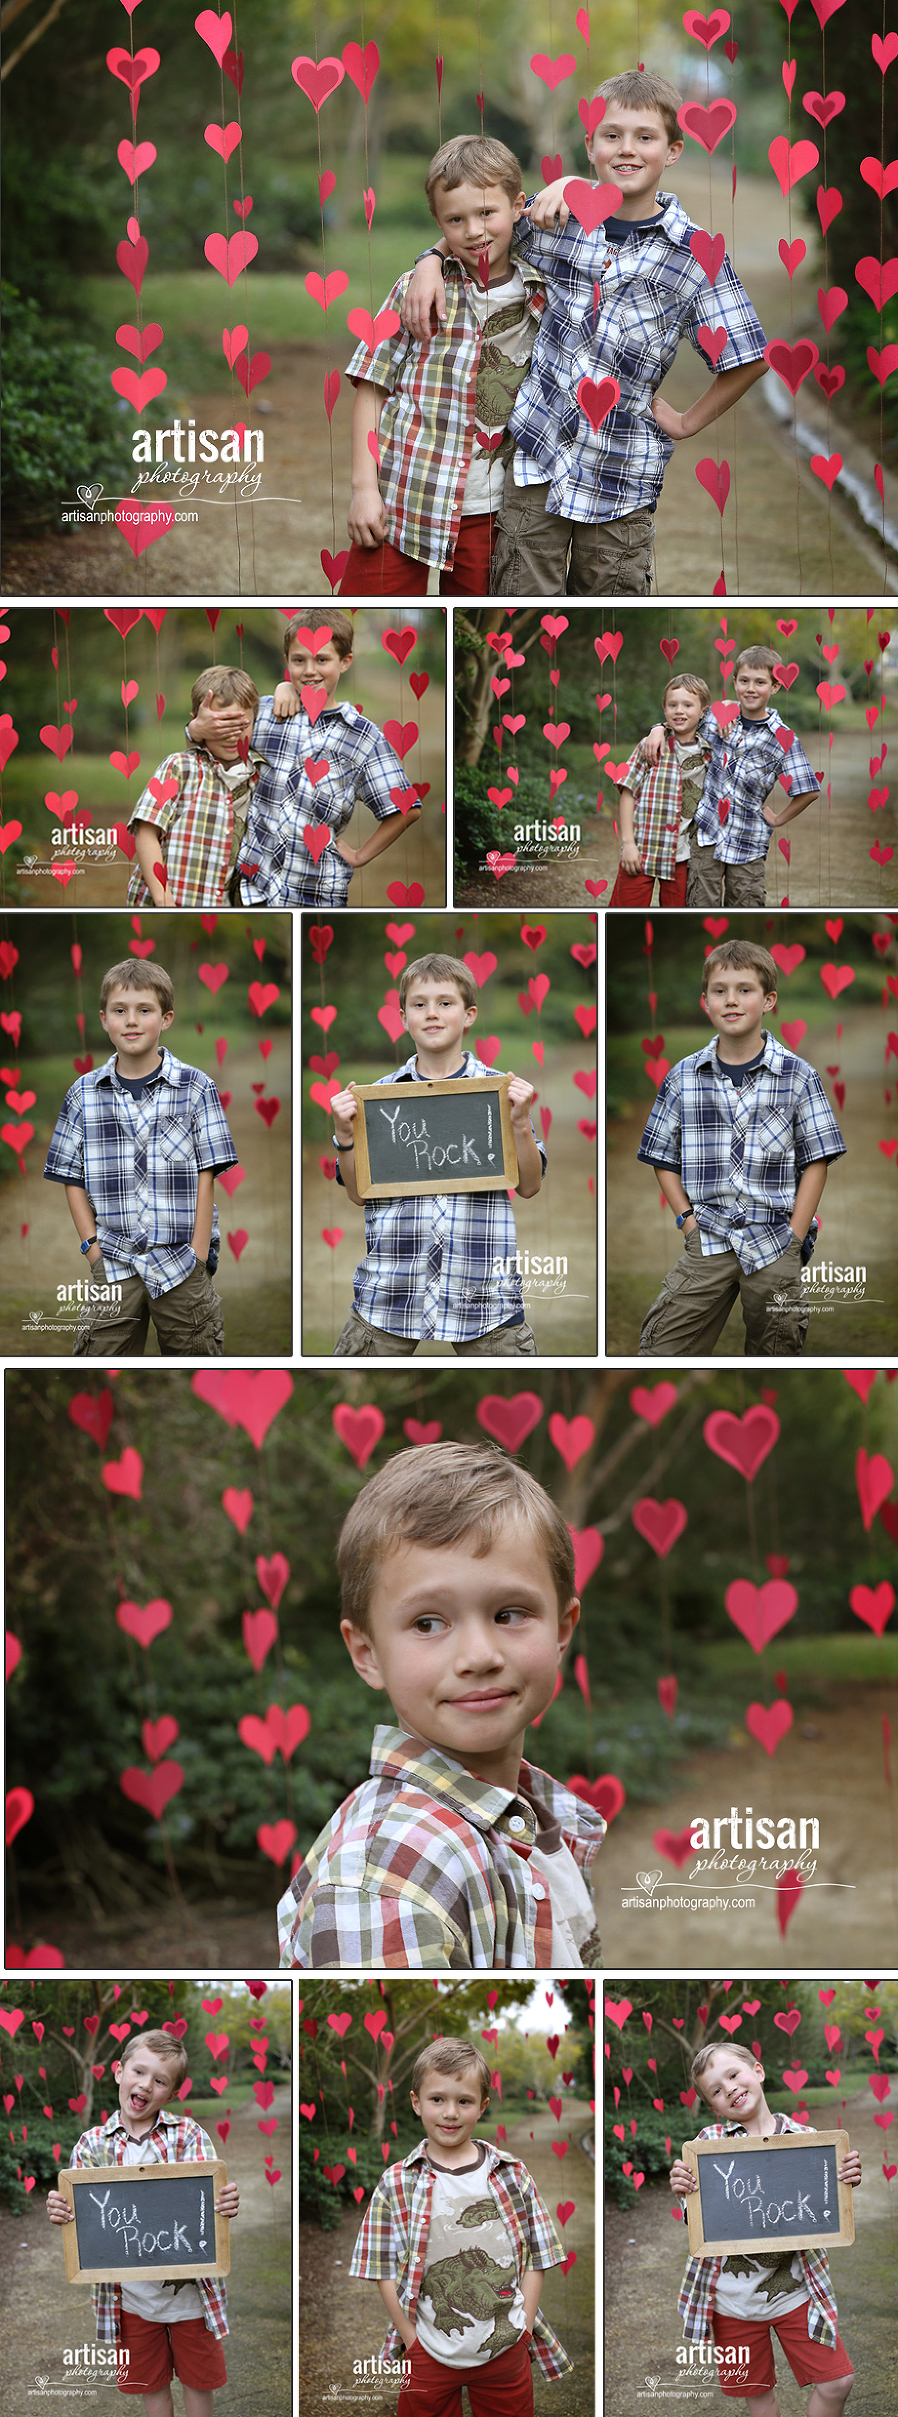 Valentines Day Photos of the kids with red hearts in the background